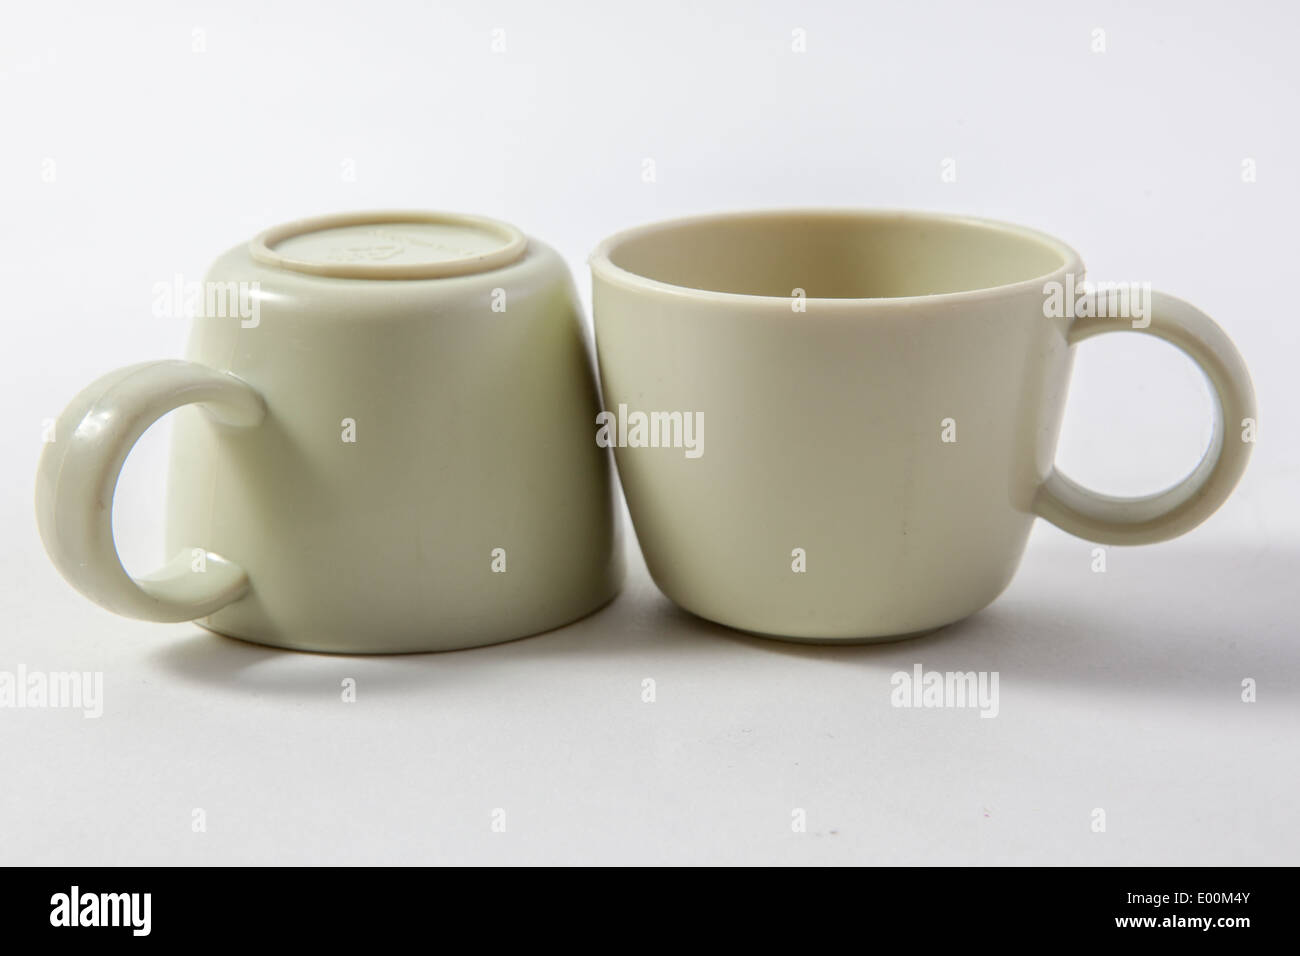 Toy Kitchen Cups For Make Believe And Pretend Play With ...